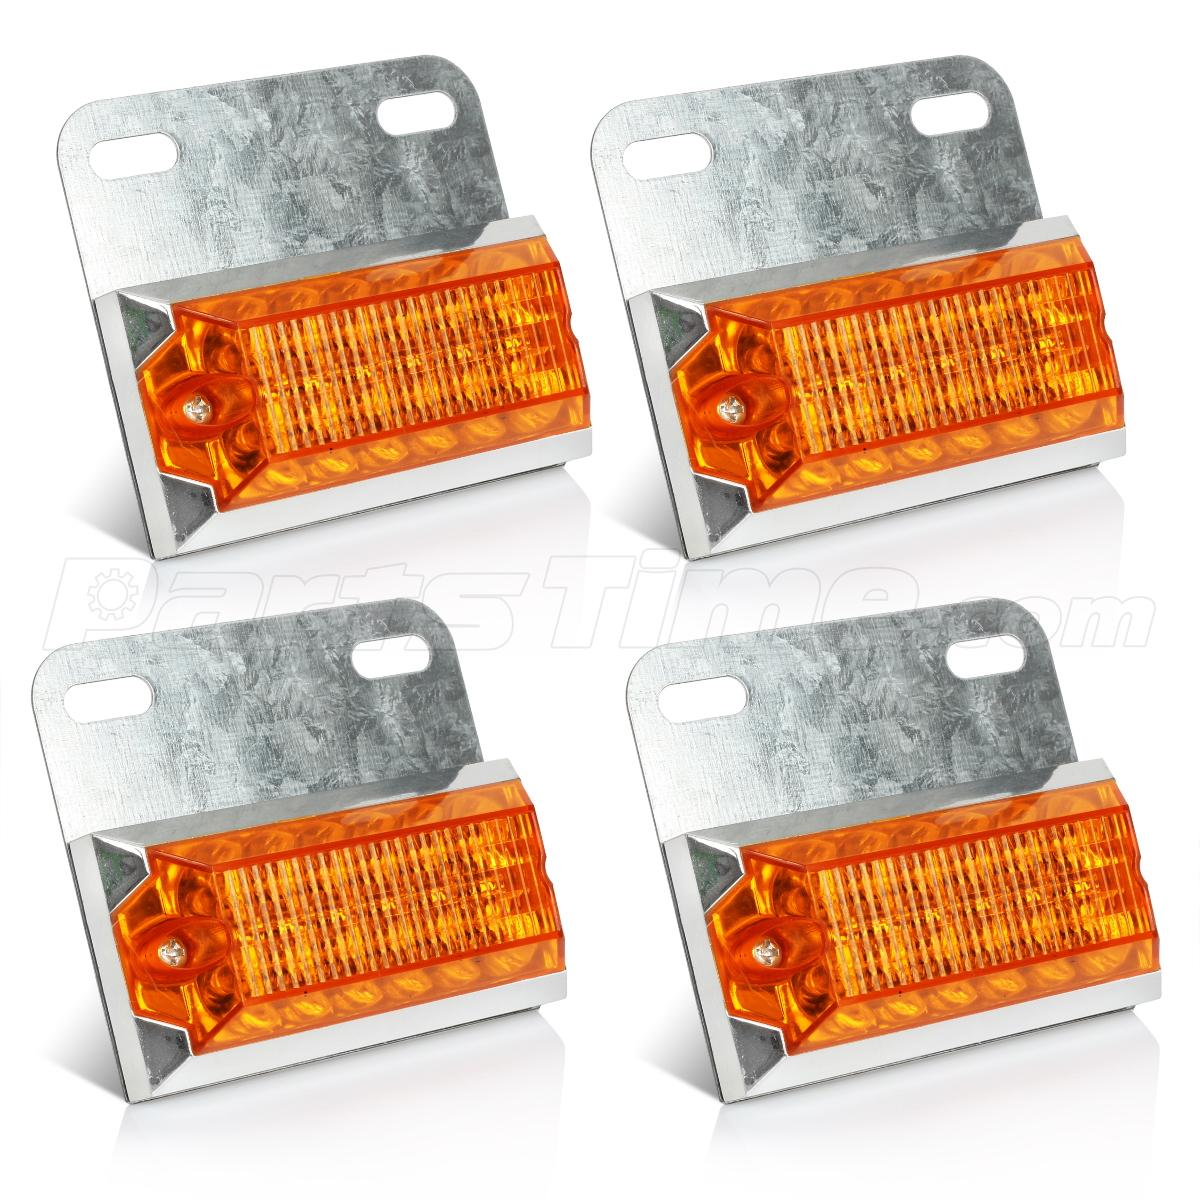 Commercial Vehicle Lighting: 4x Amber 12-LED Side Marker Led Lights Auto Warning Lights